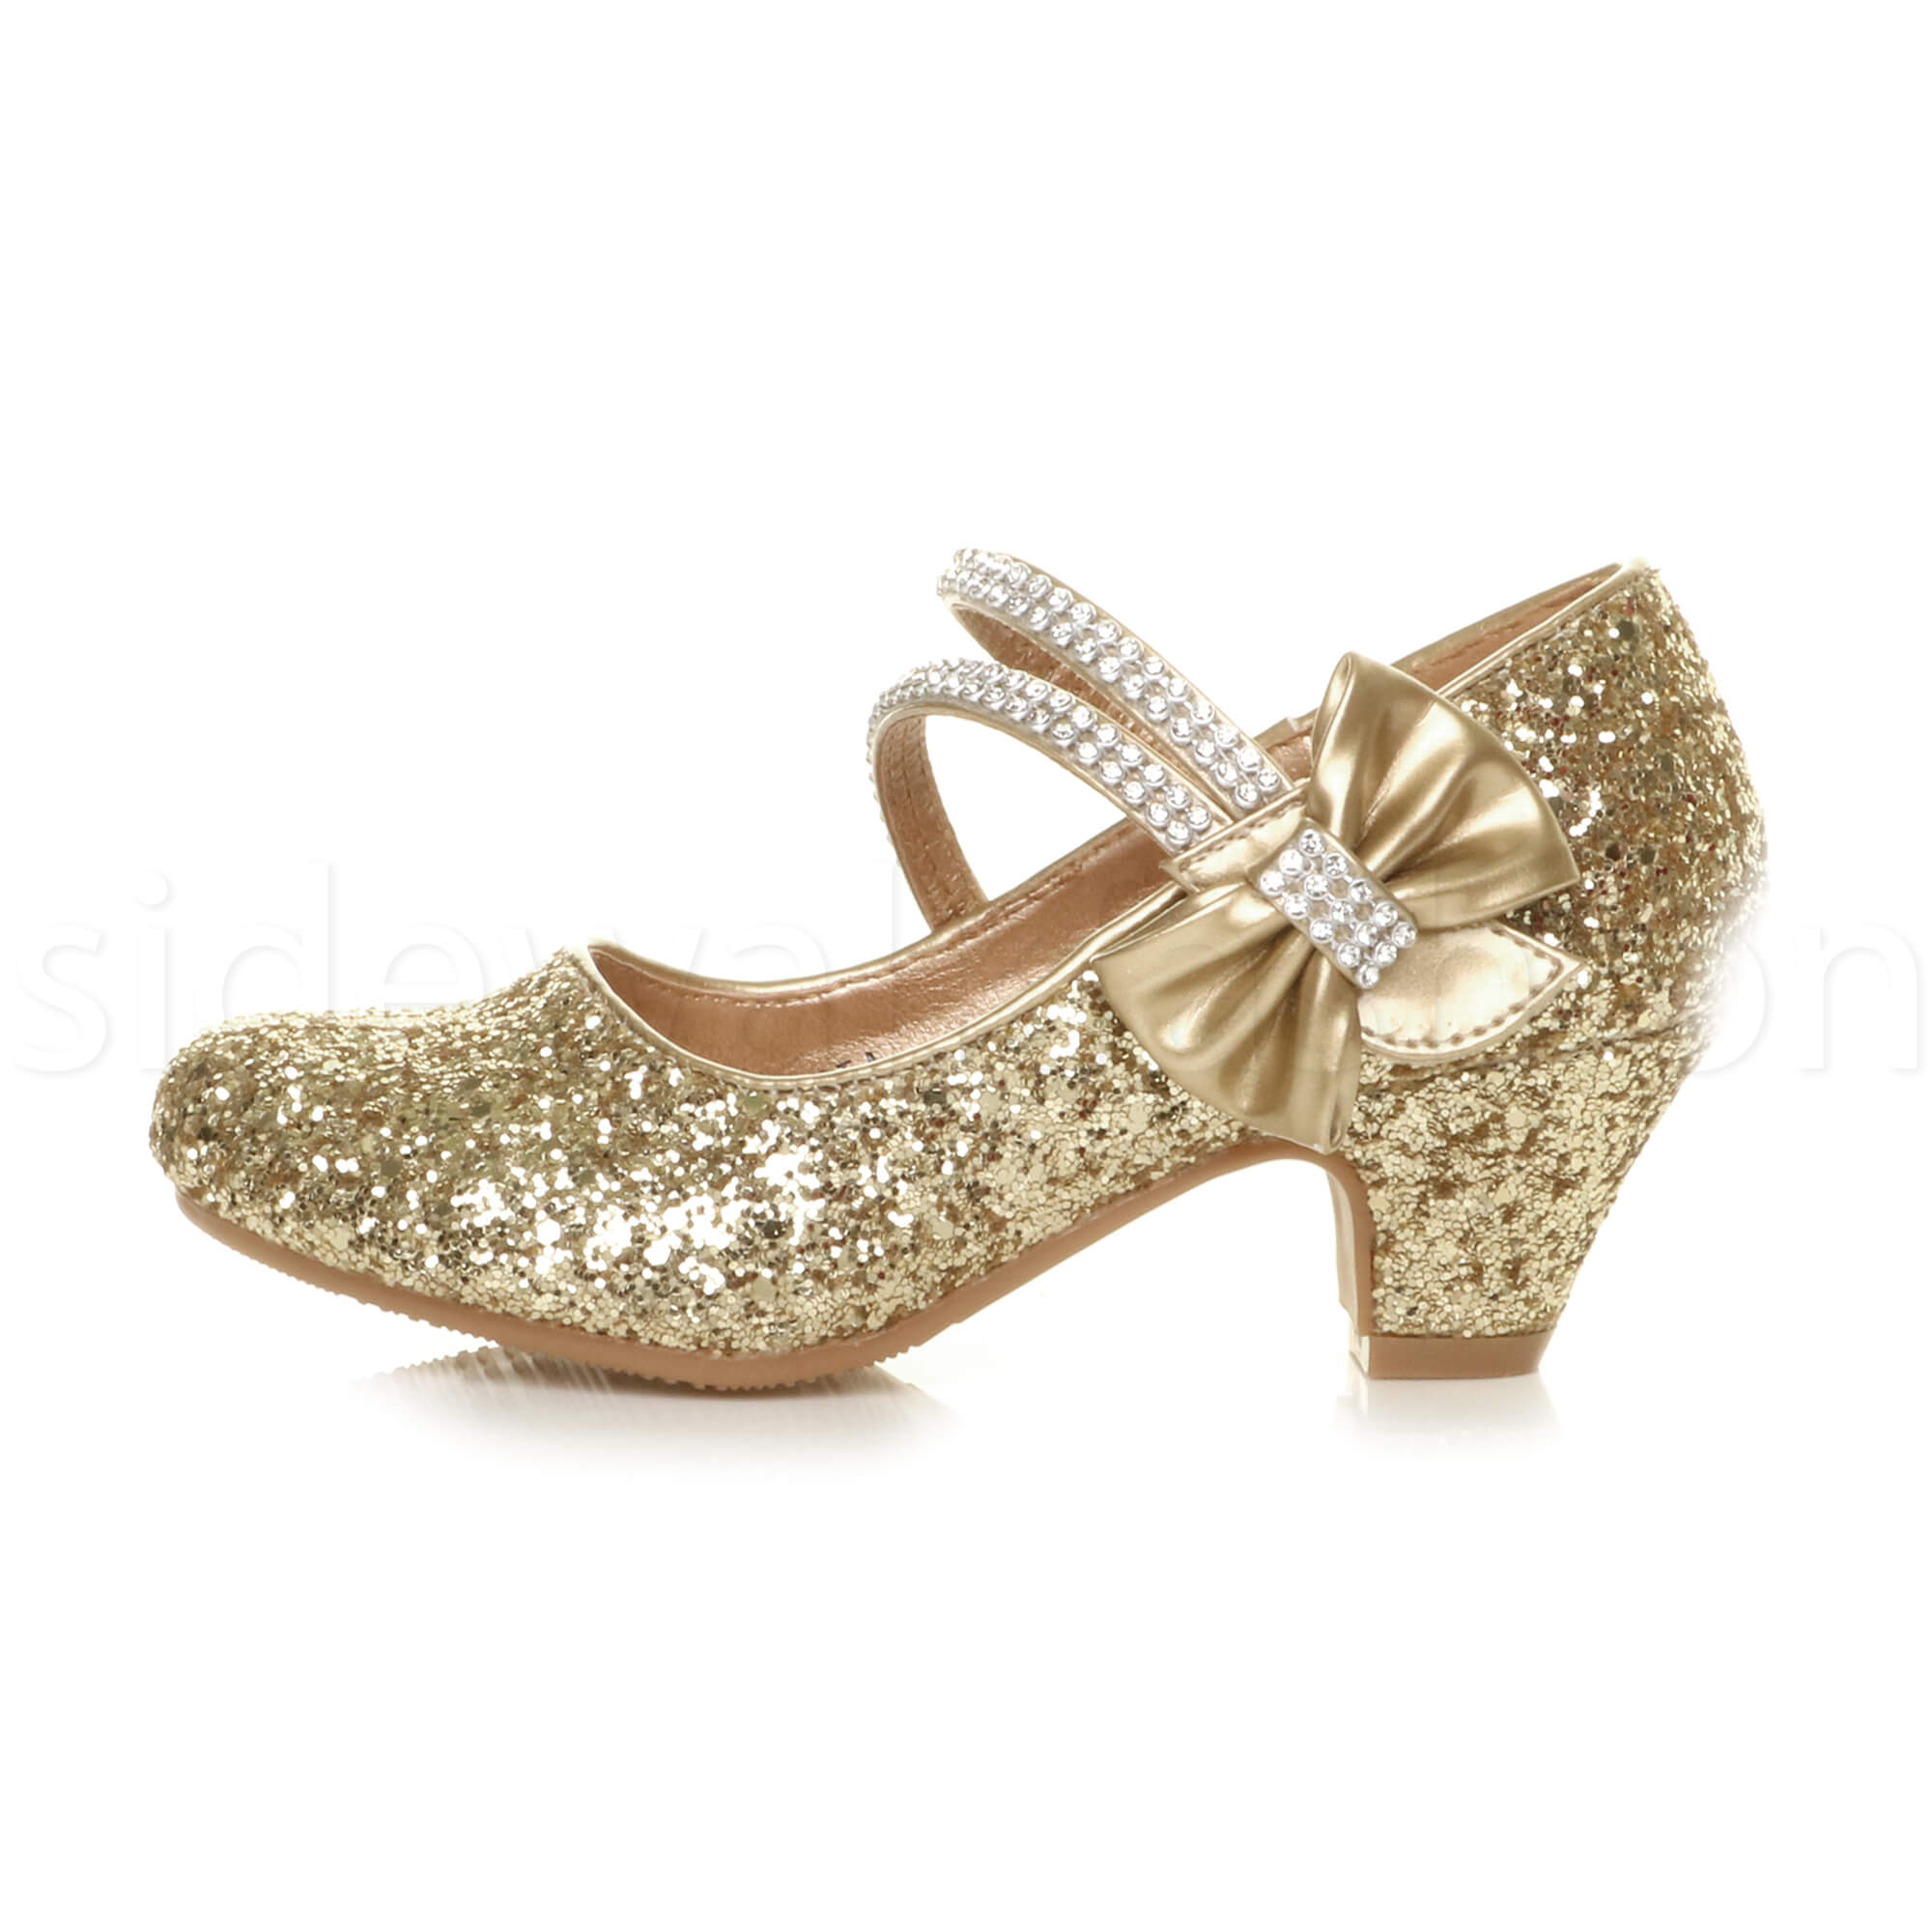 7989d67578e Girls kids childrens low heel party wedding mary jane sandals court ...